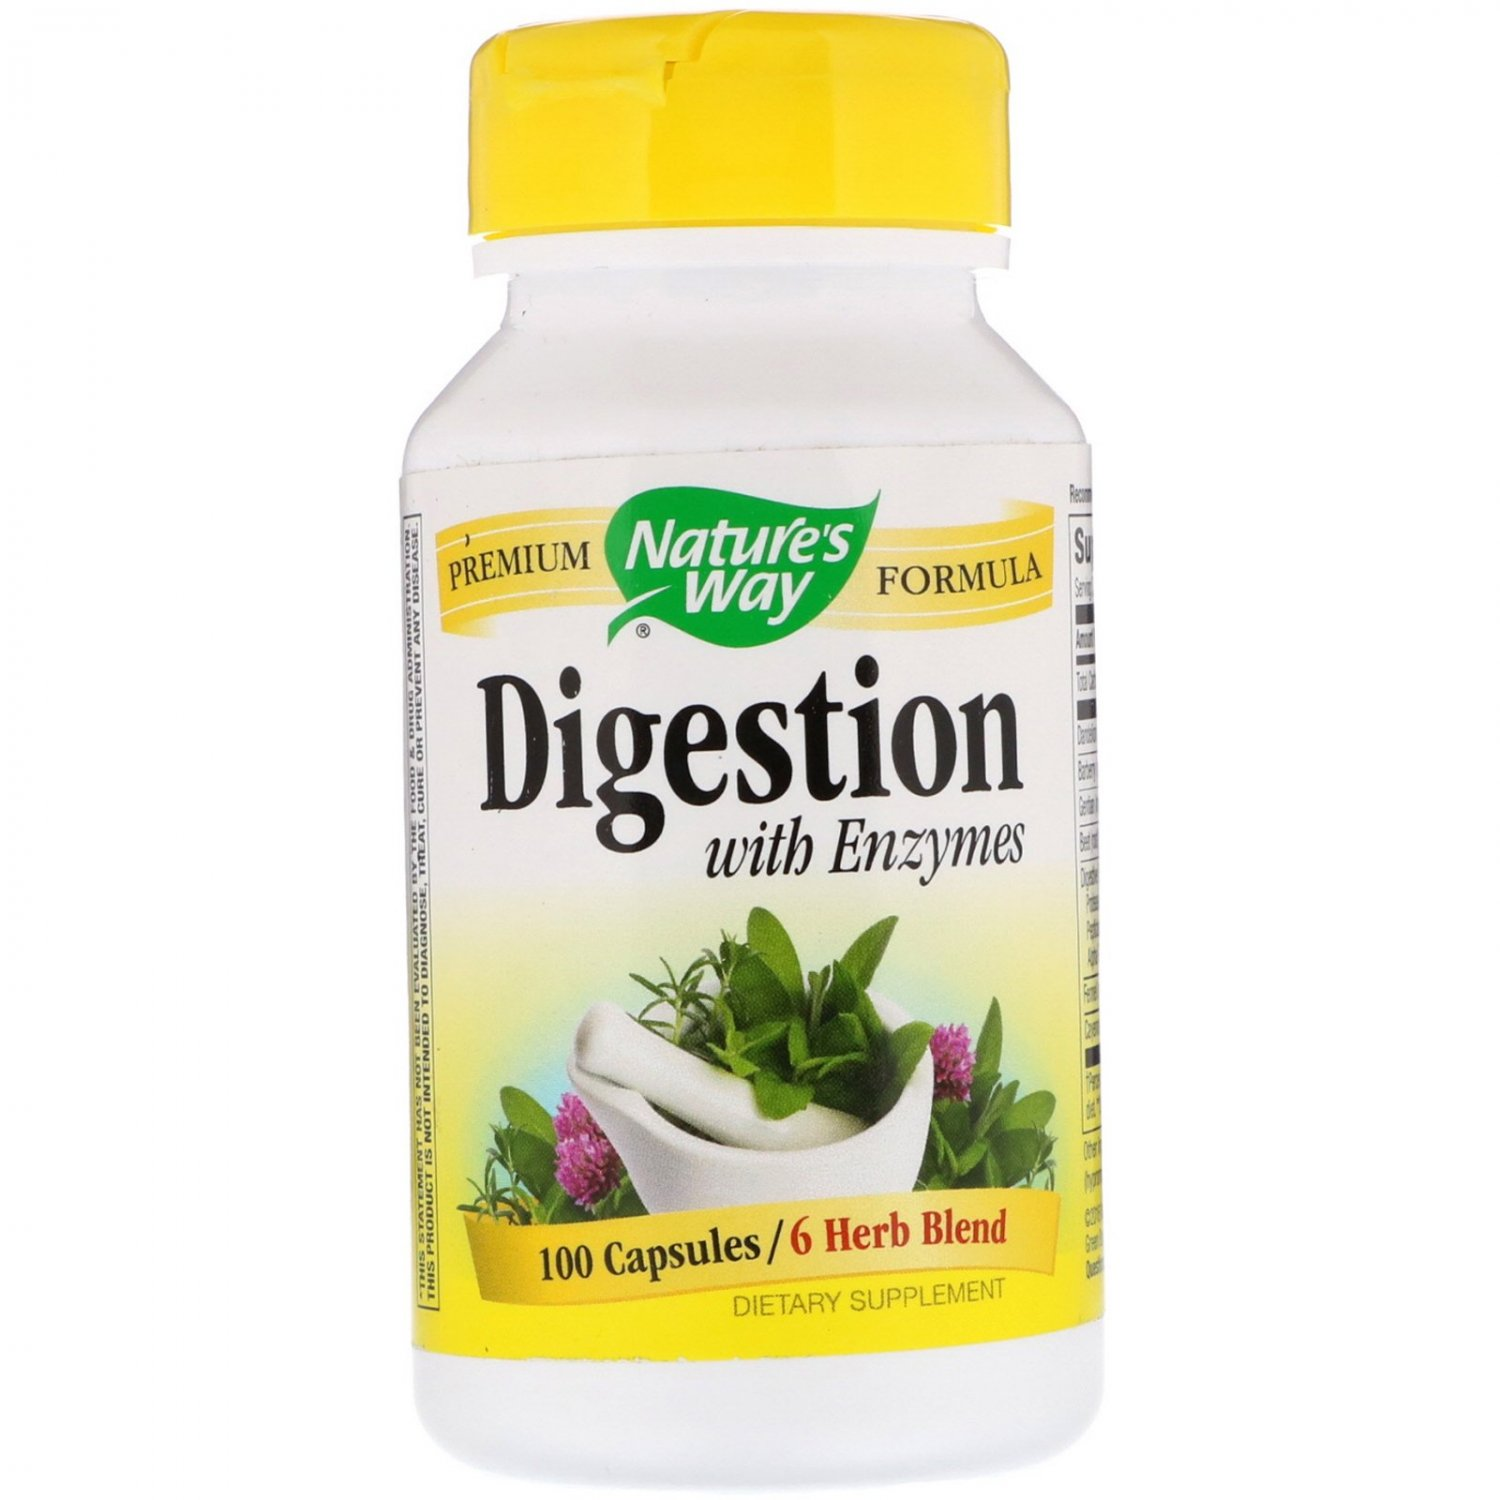 Nature's Way, Digestion, with Enzymes, 100 Capsules